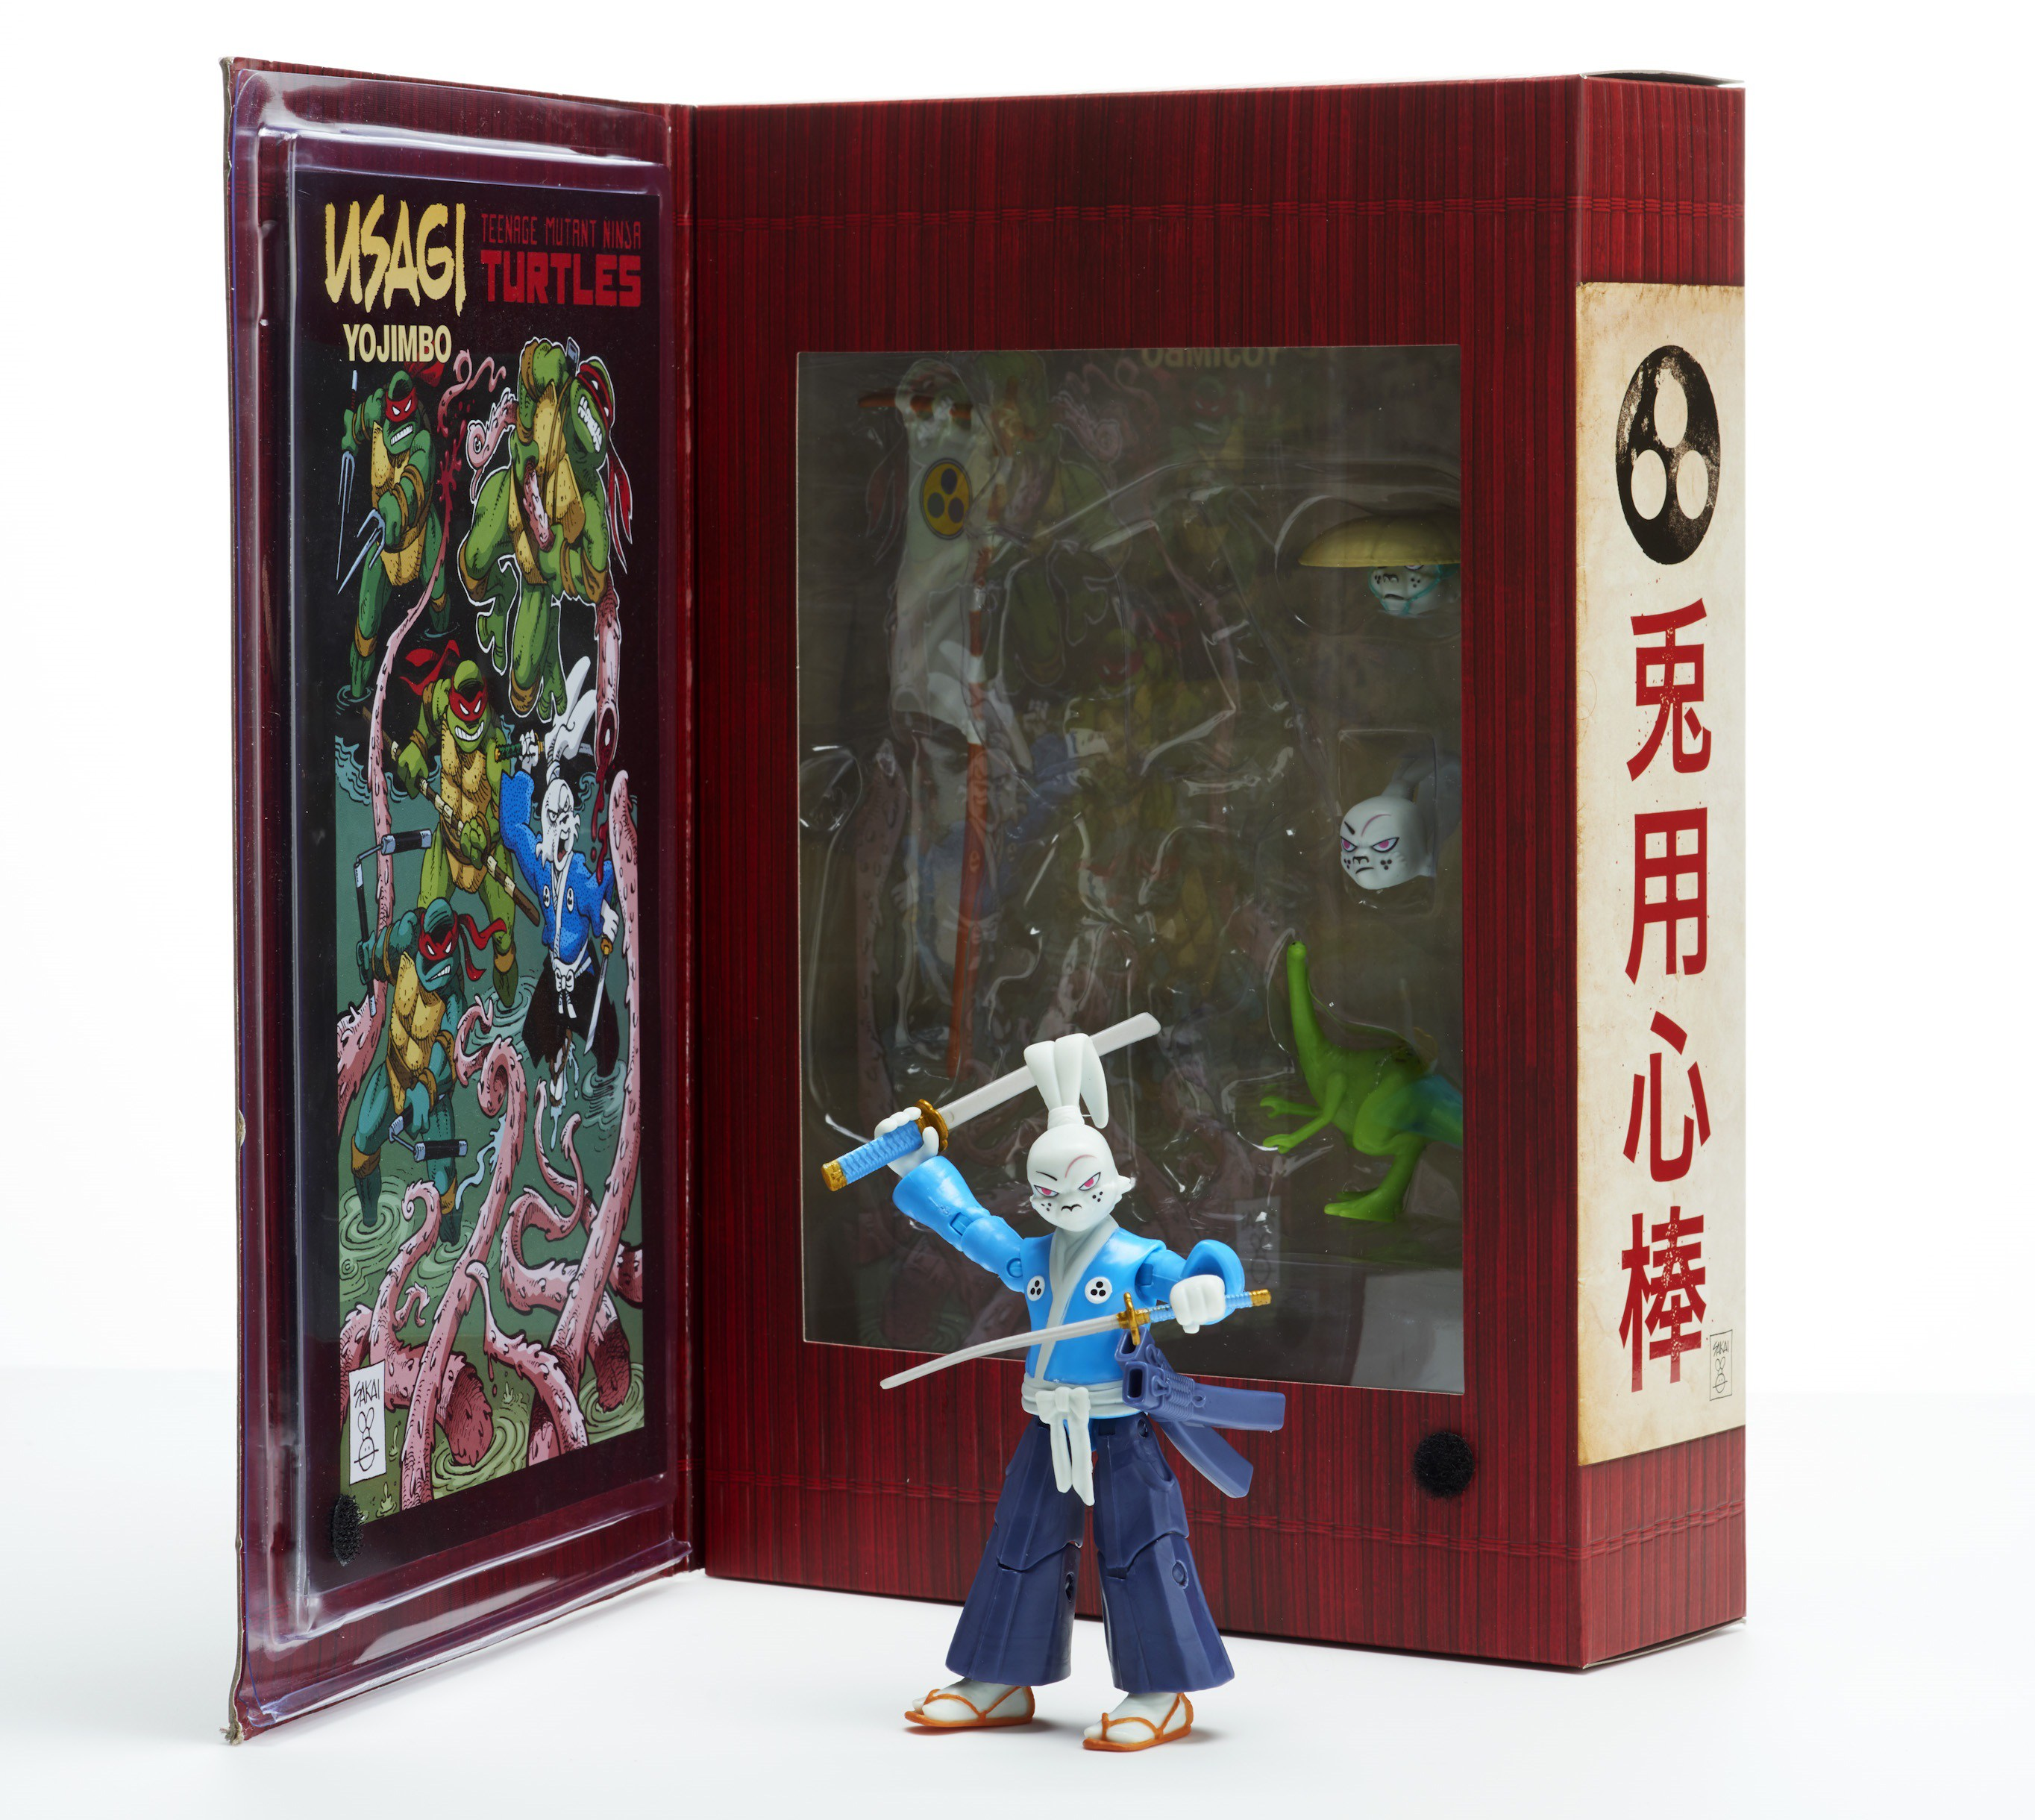 Playmates_Samurai_Rabbit_Usagi_Yojimbo-tmnt-exclusive